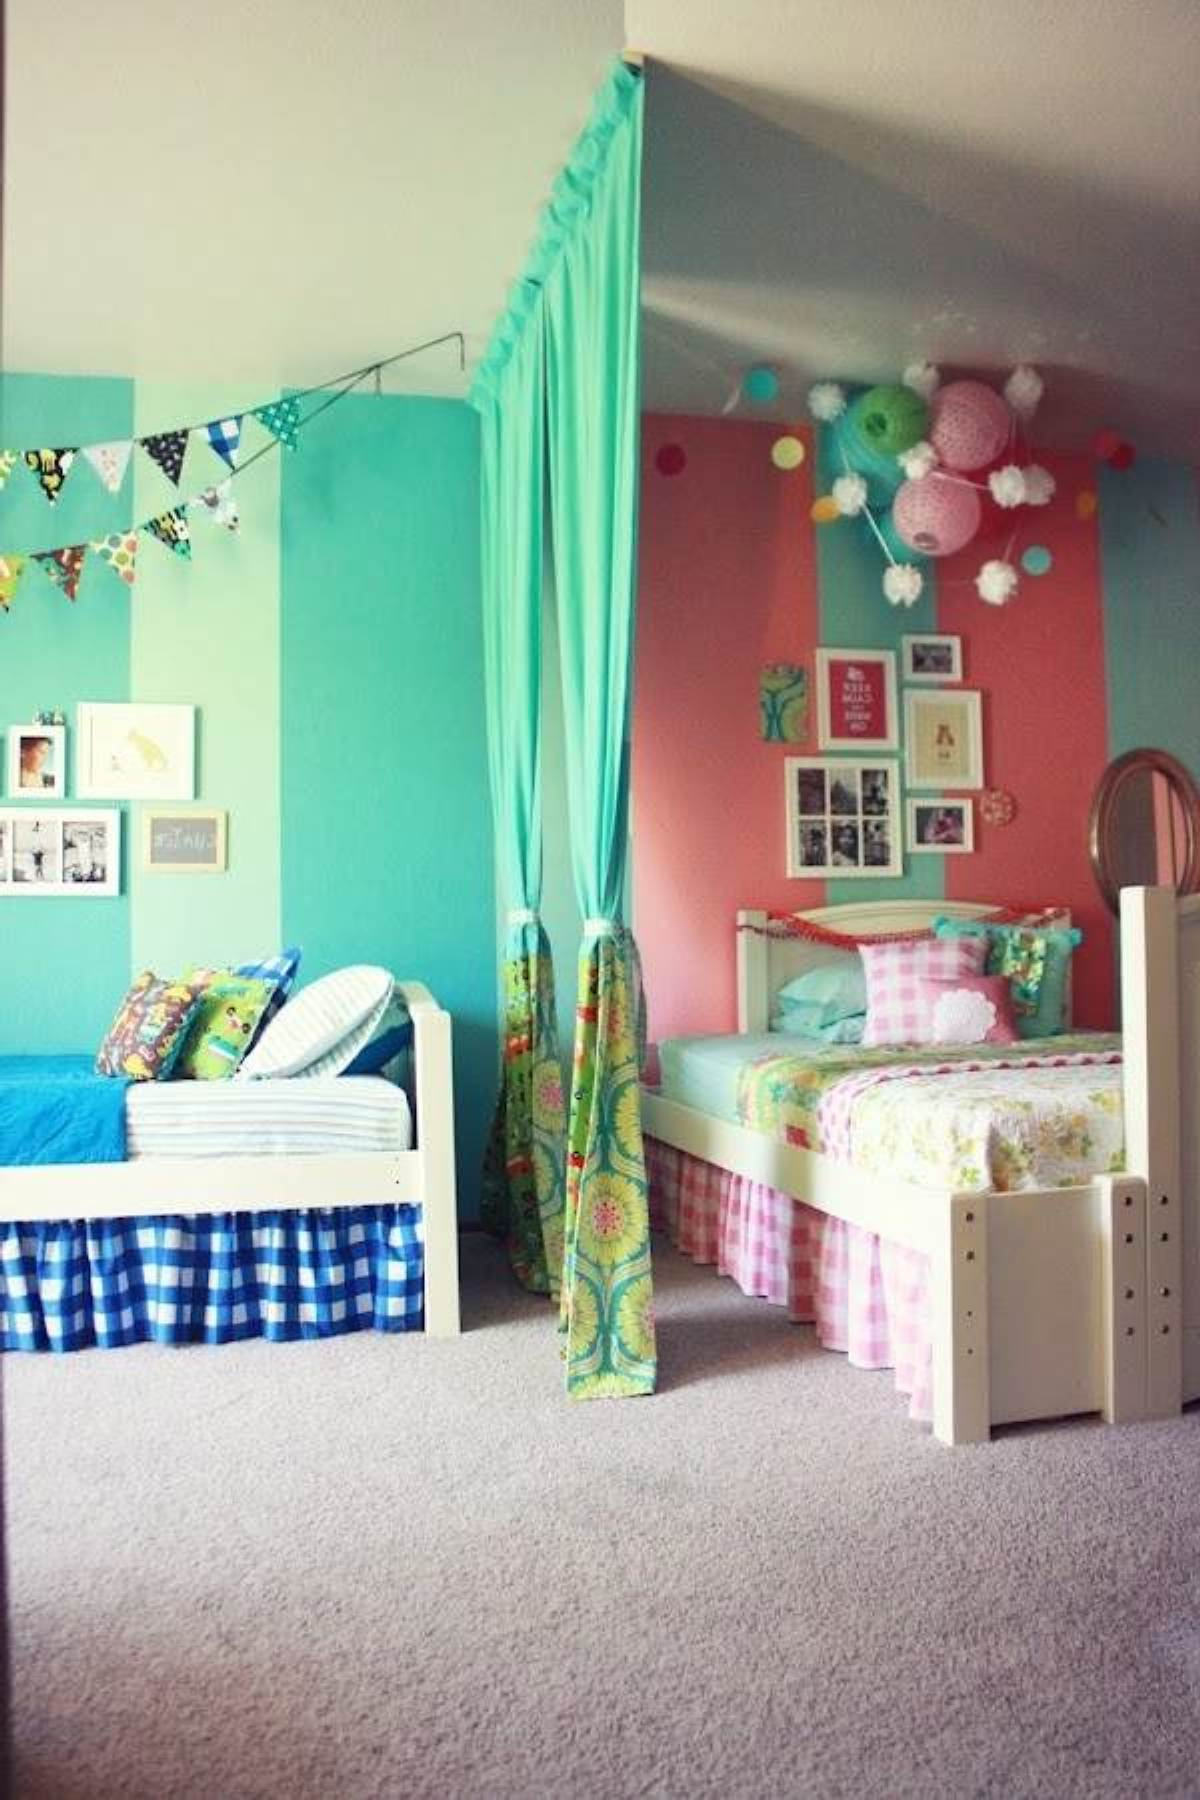 Ikea kids bedroom for siblings with different tastes, half green and half pink